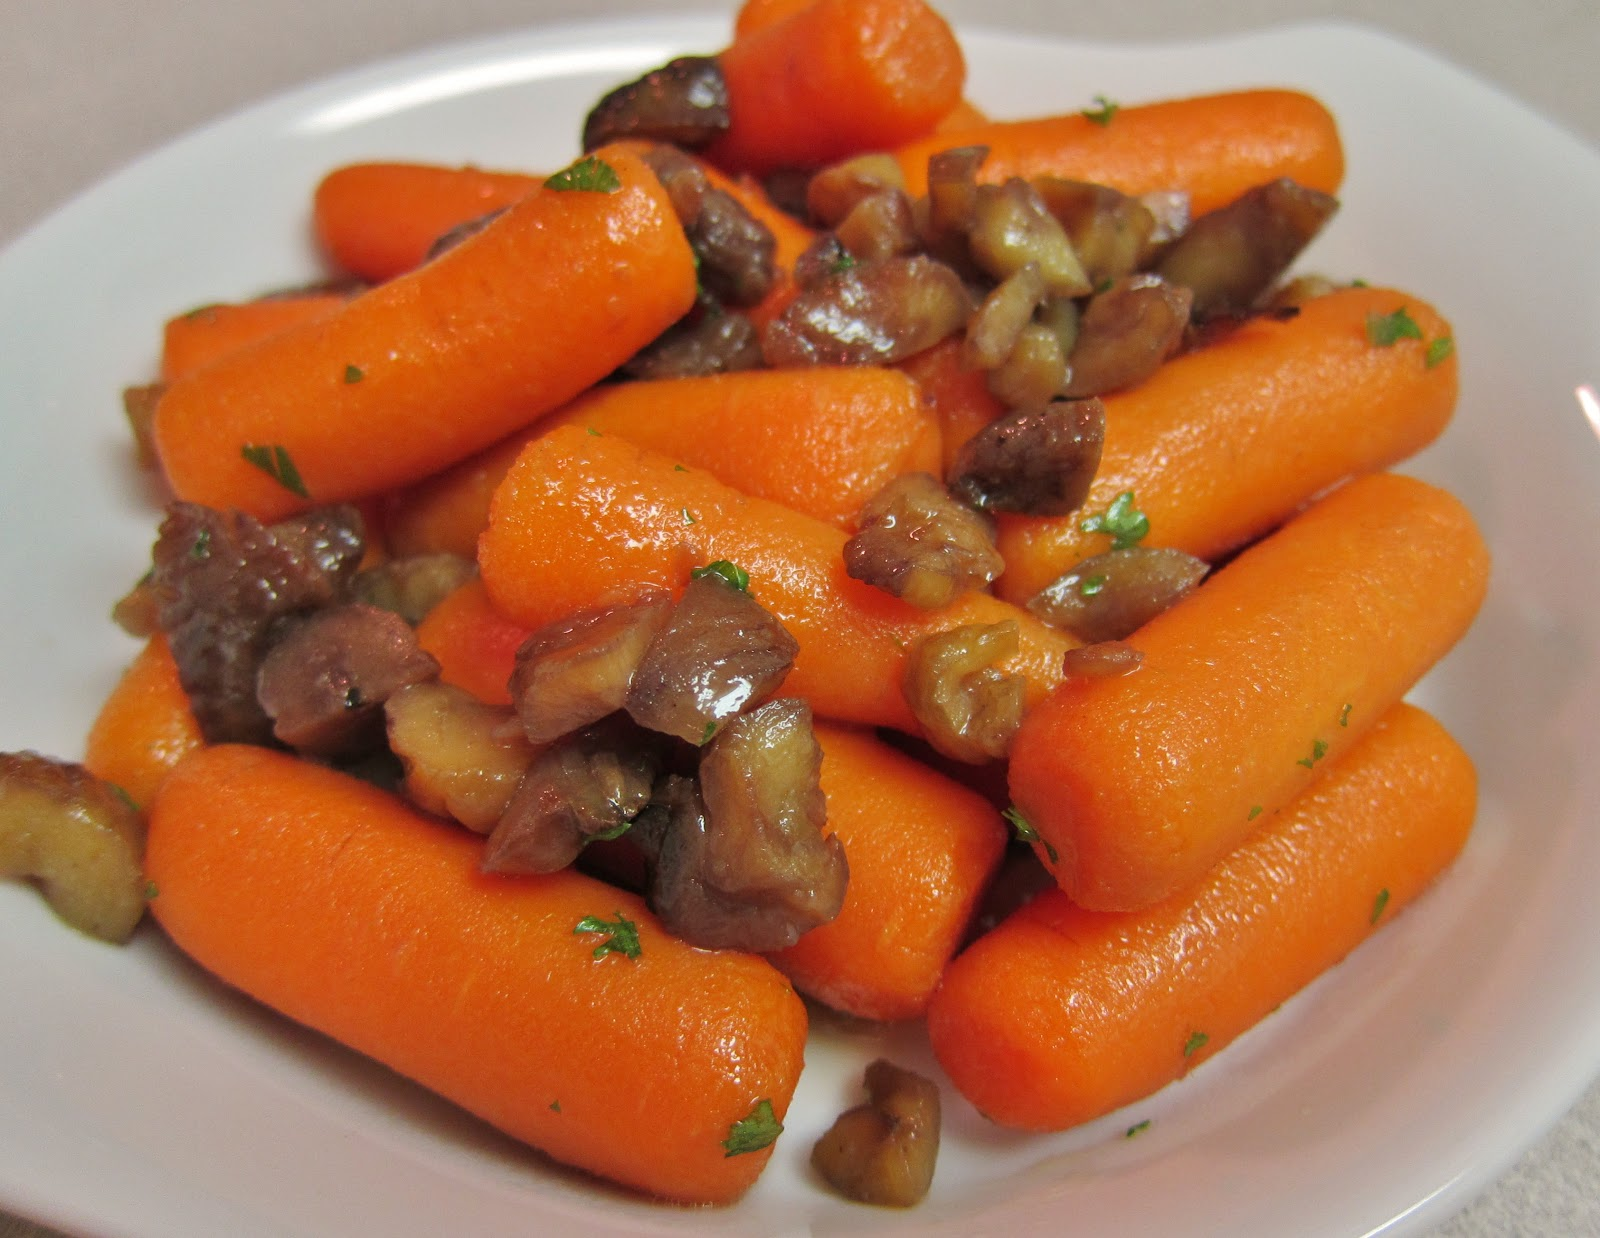 The Vegan Chronicle: Glazed Carrots with Candied Chestnuts